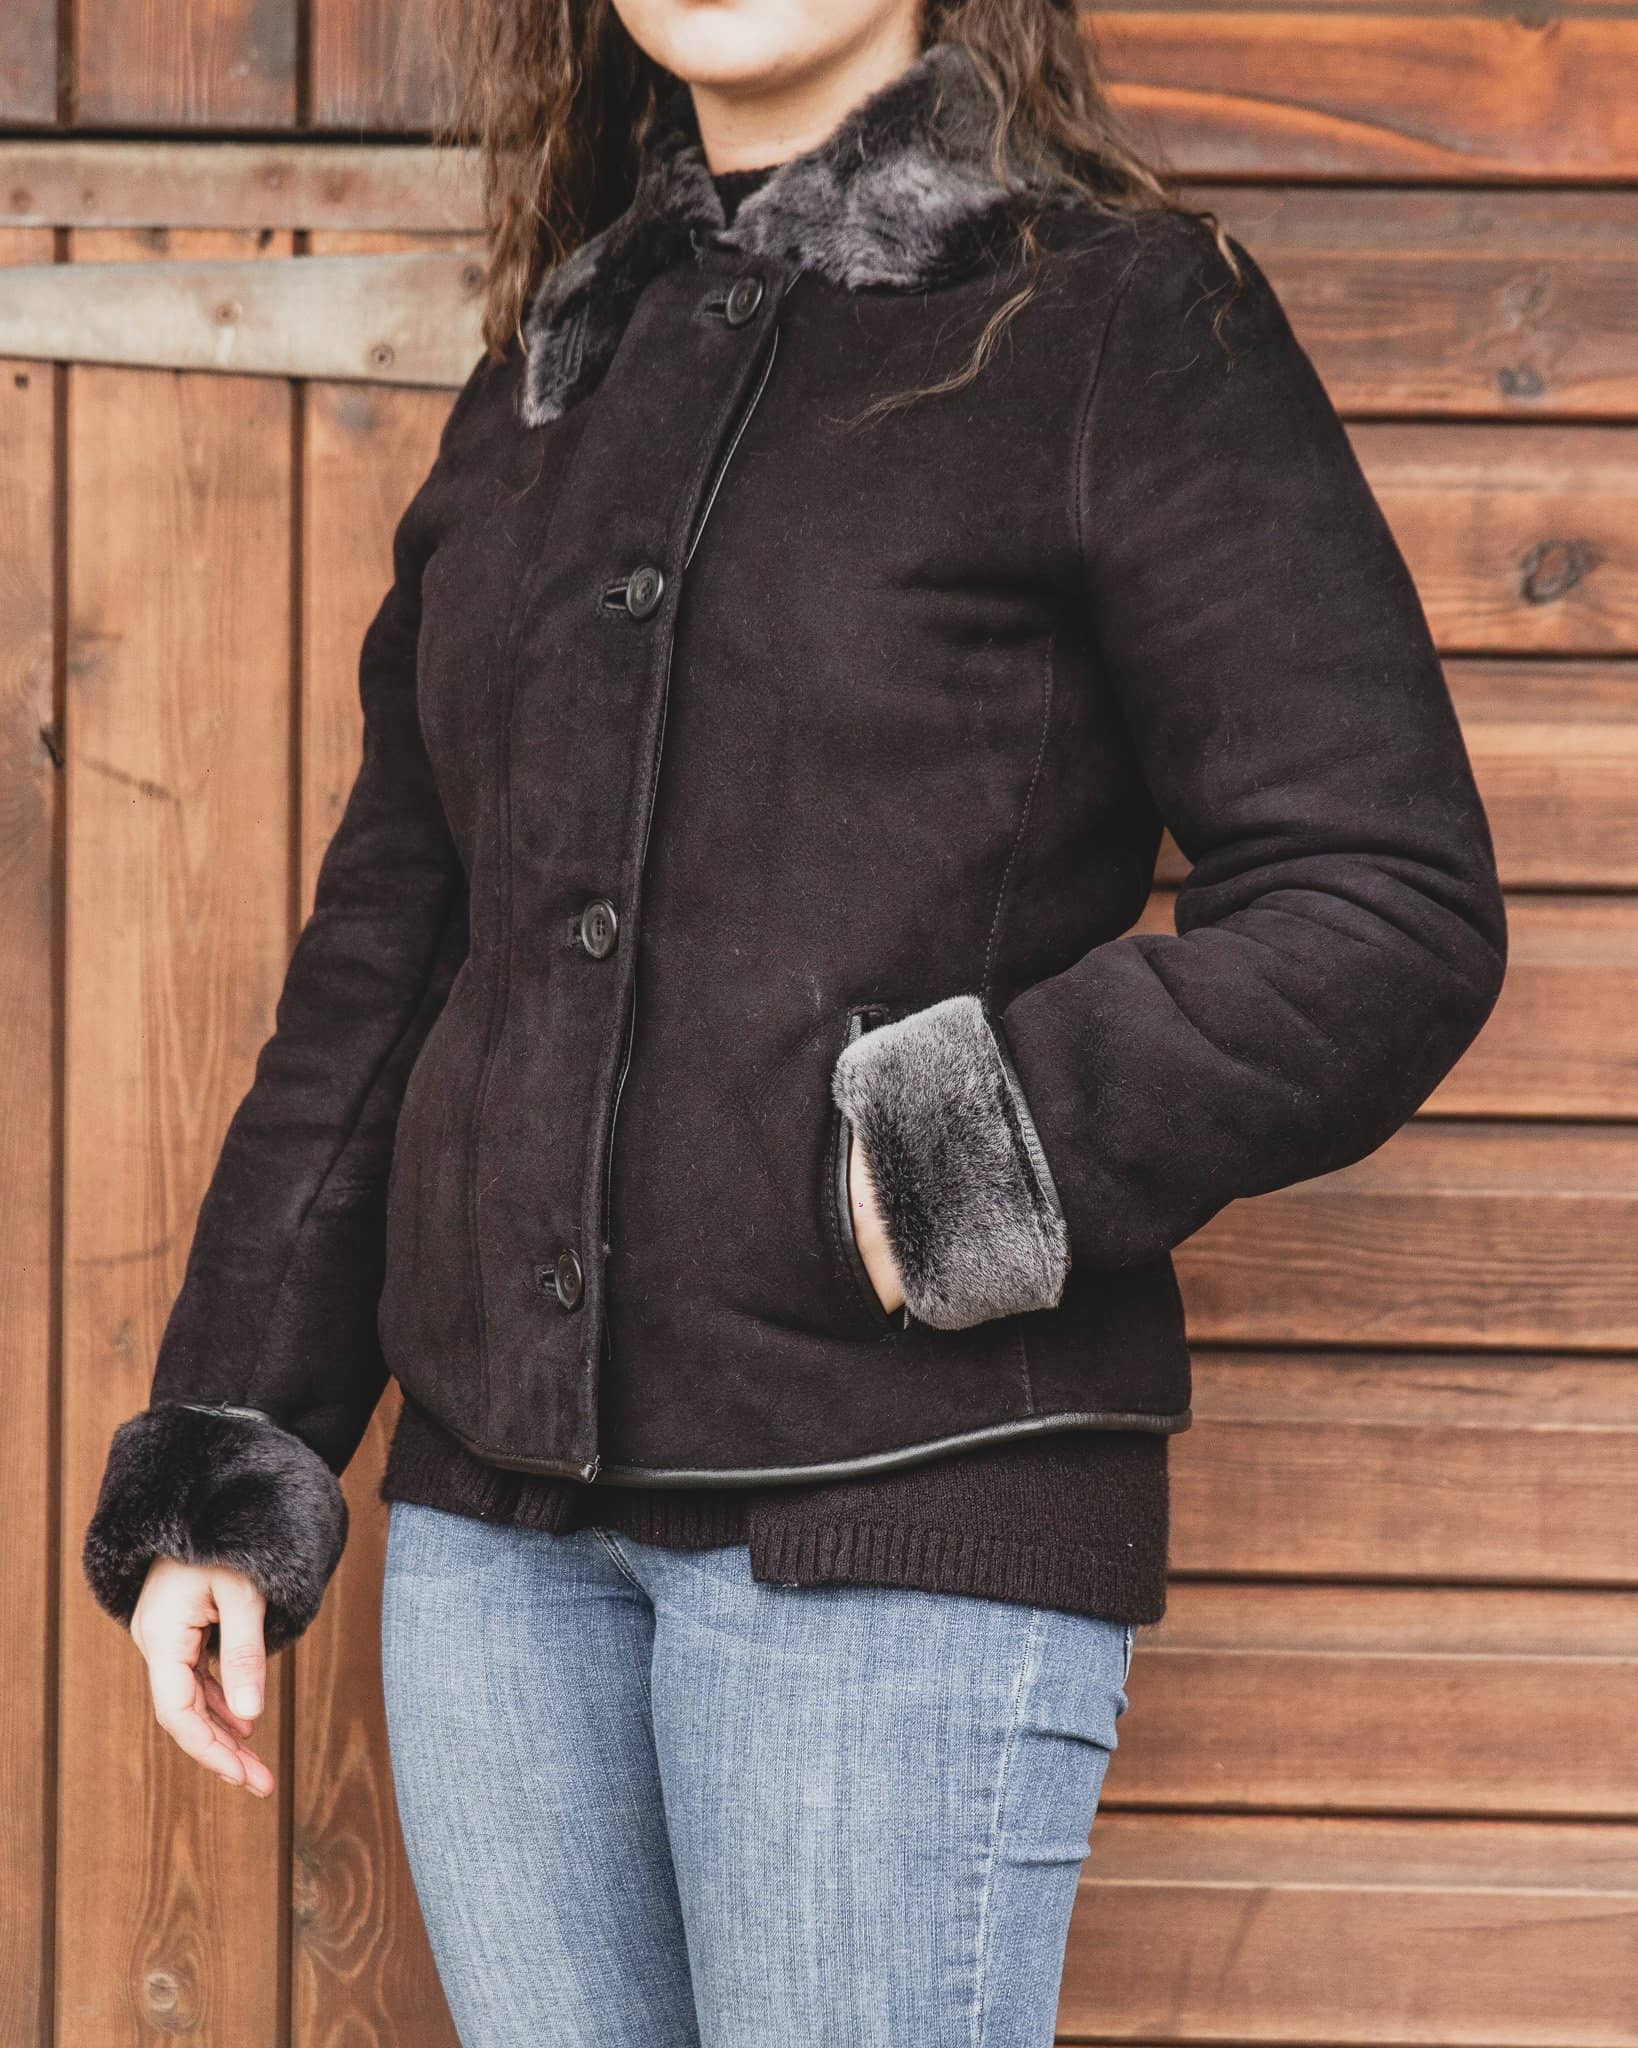 Nordvek womens sheepskin jacket 706-100 black front on model stood infront of stable